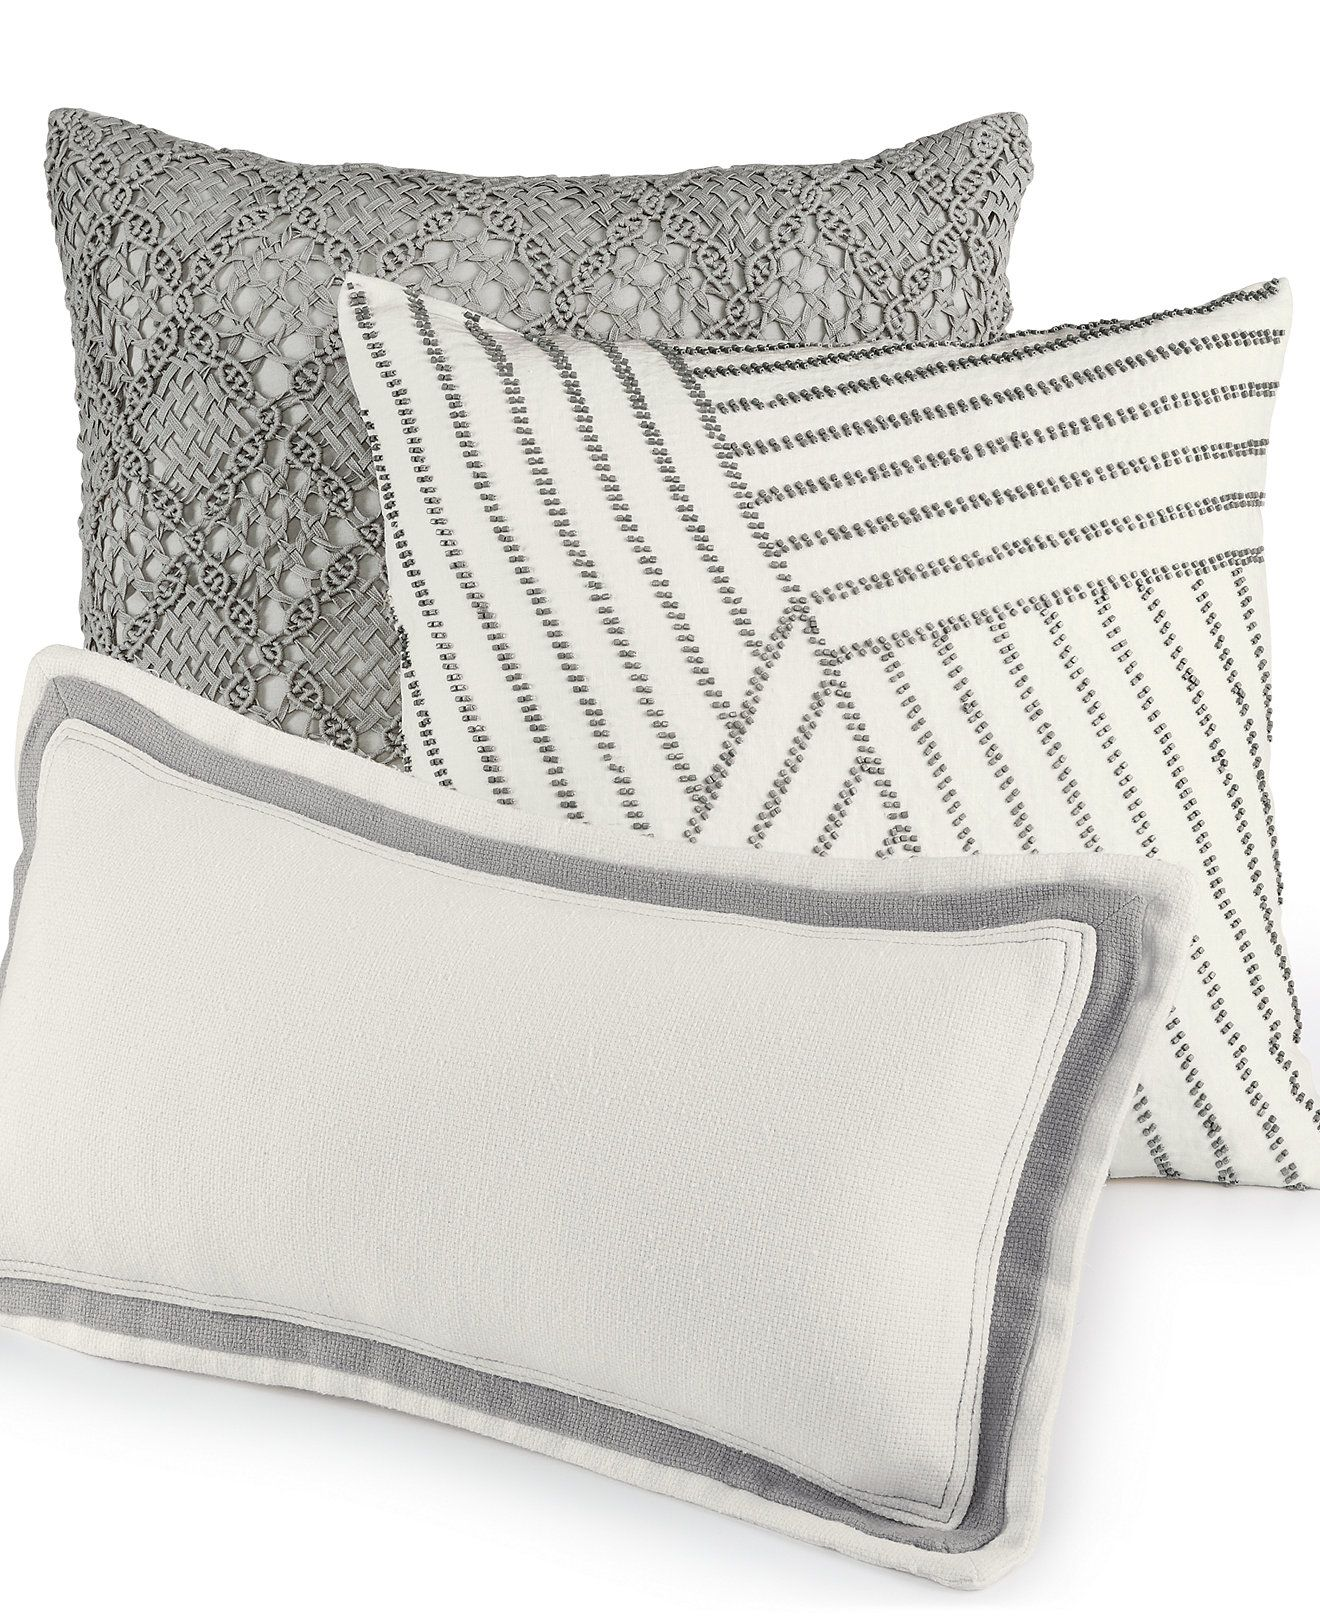 Hotel Collection Linen Fog Decorative Pillow @ Macy\'s - $70+? I can ...